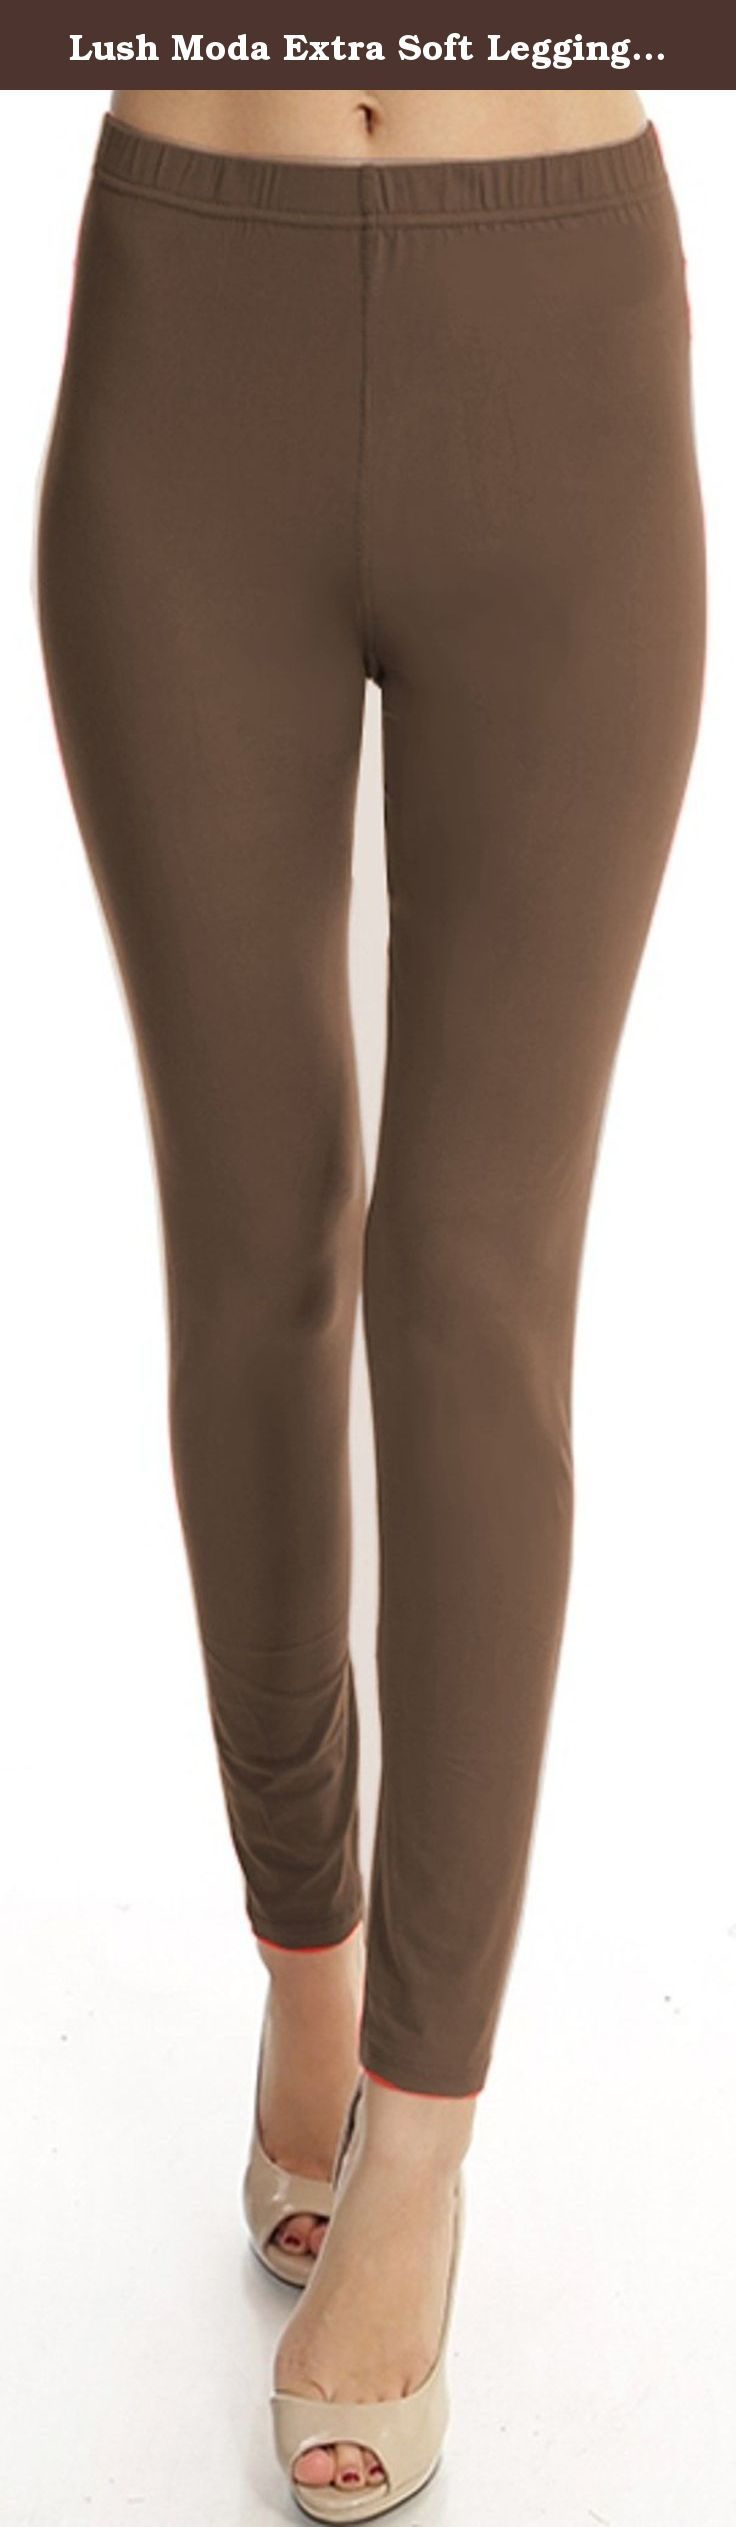 Lush Moda Extra Soft Leggings - Variety of Colors - Mocha. Get Comfortable and look fabulous in these super soft and stretchy leggings. Great way to update your wardrobe by adding a few color options to mix and match with different outfits. These leggings are very versatile and are easy to dress up or down depending on your needs.